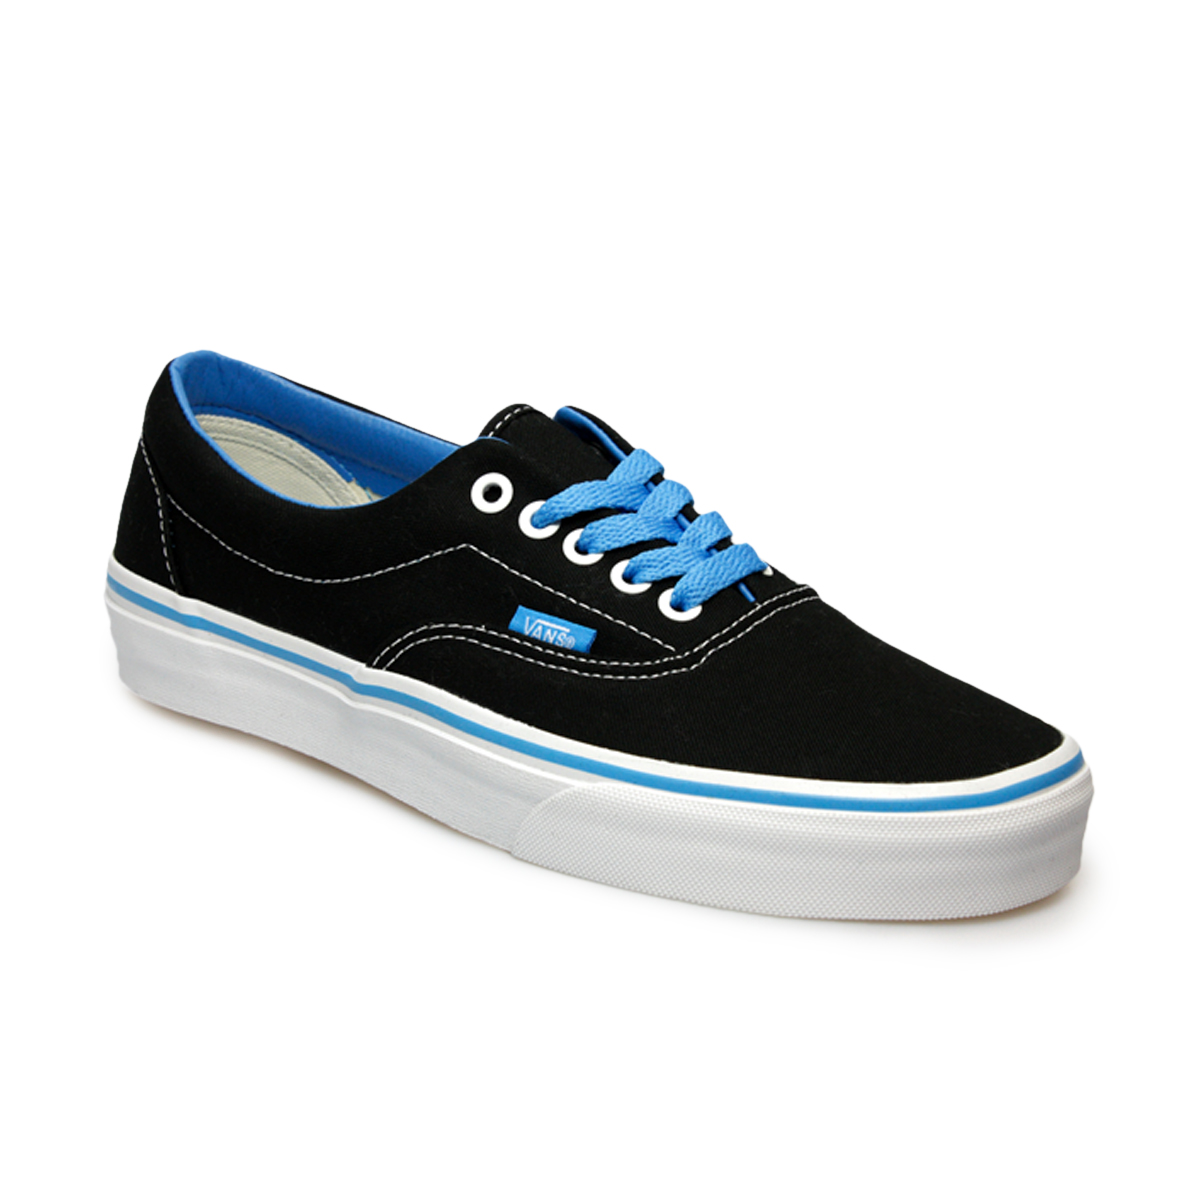 Cool Vans Shoes For Men, Women, Boys, And Girls Spring From The Very Heart Of Southern California Skateboarding Culture Many Vans Shoe Designs Help Advance The Sports That Inspired Them Through The Companys Devotion To Advance Competitive